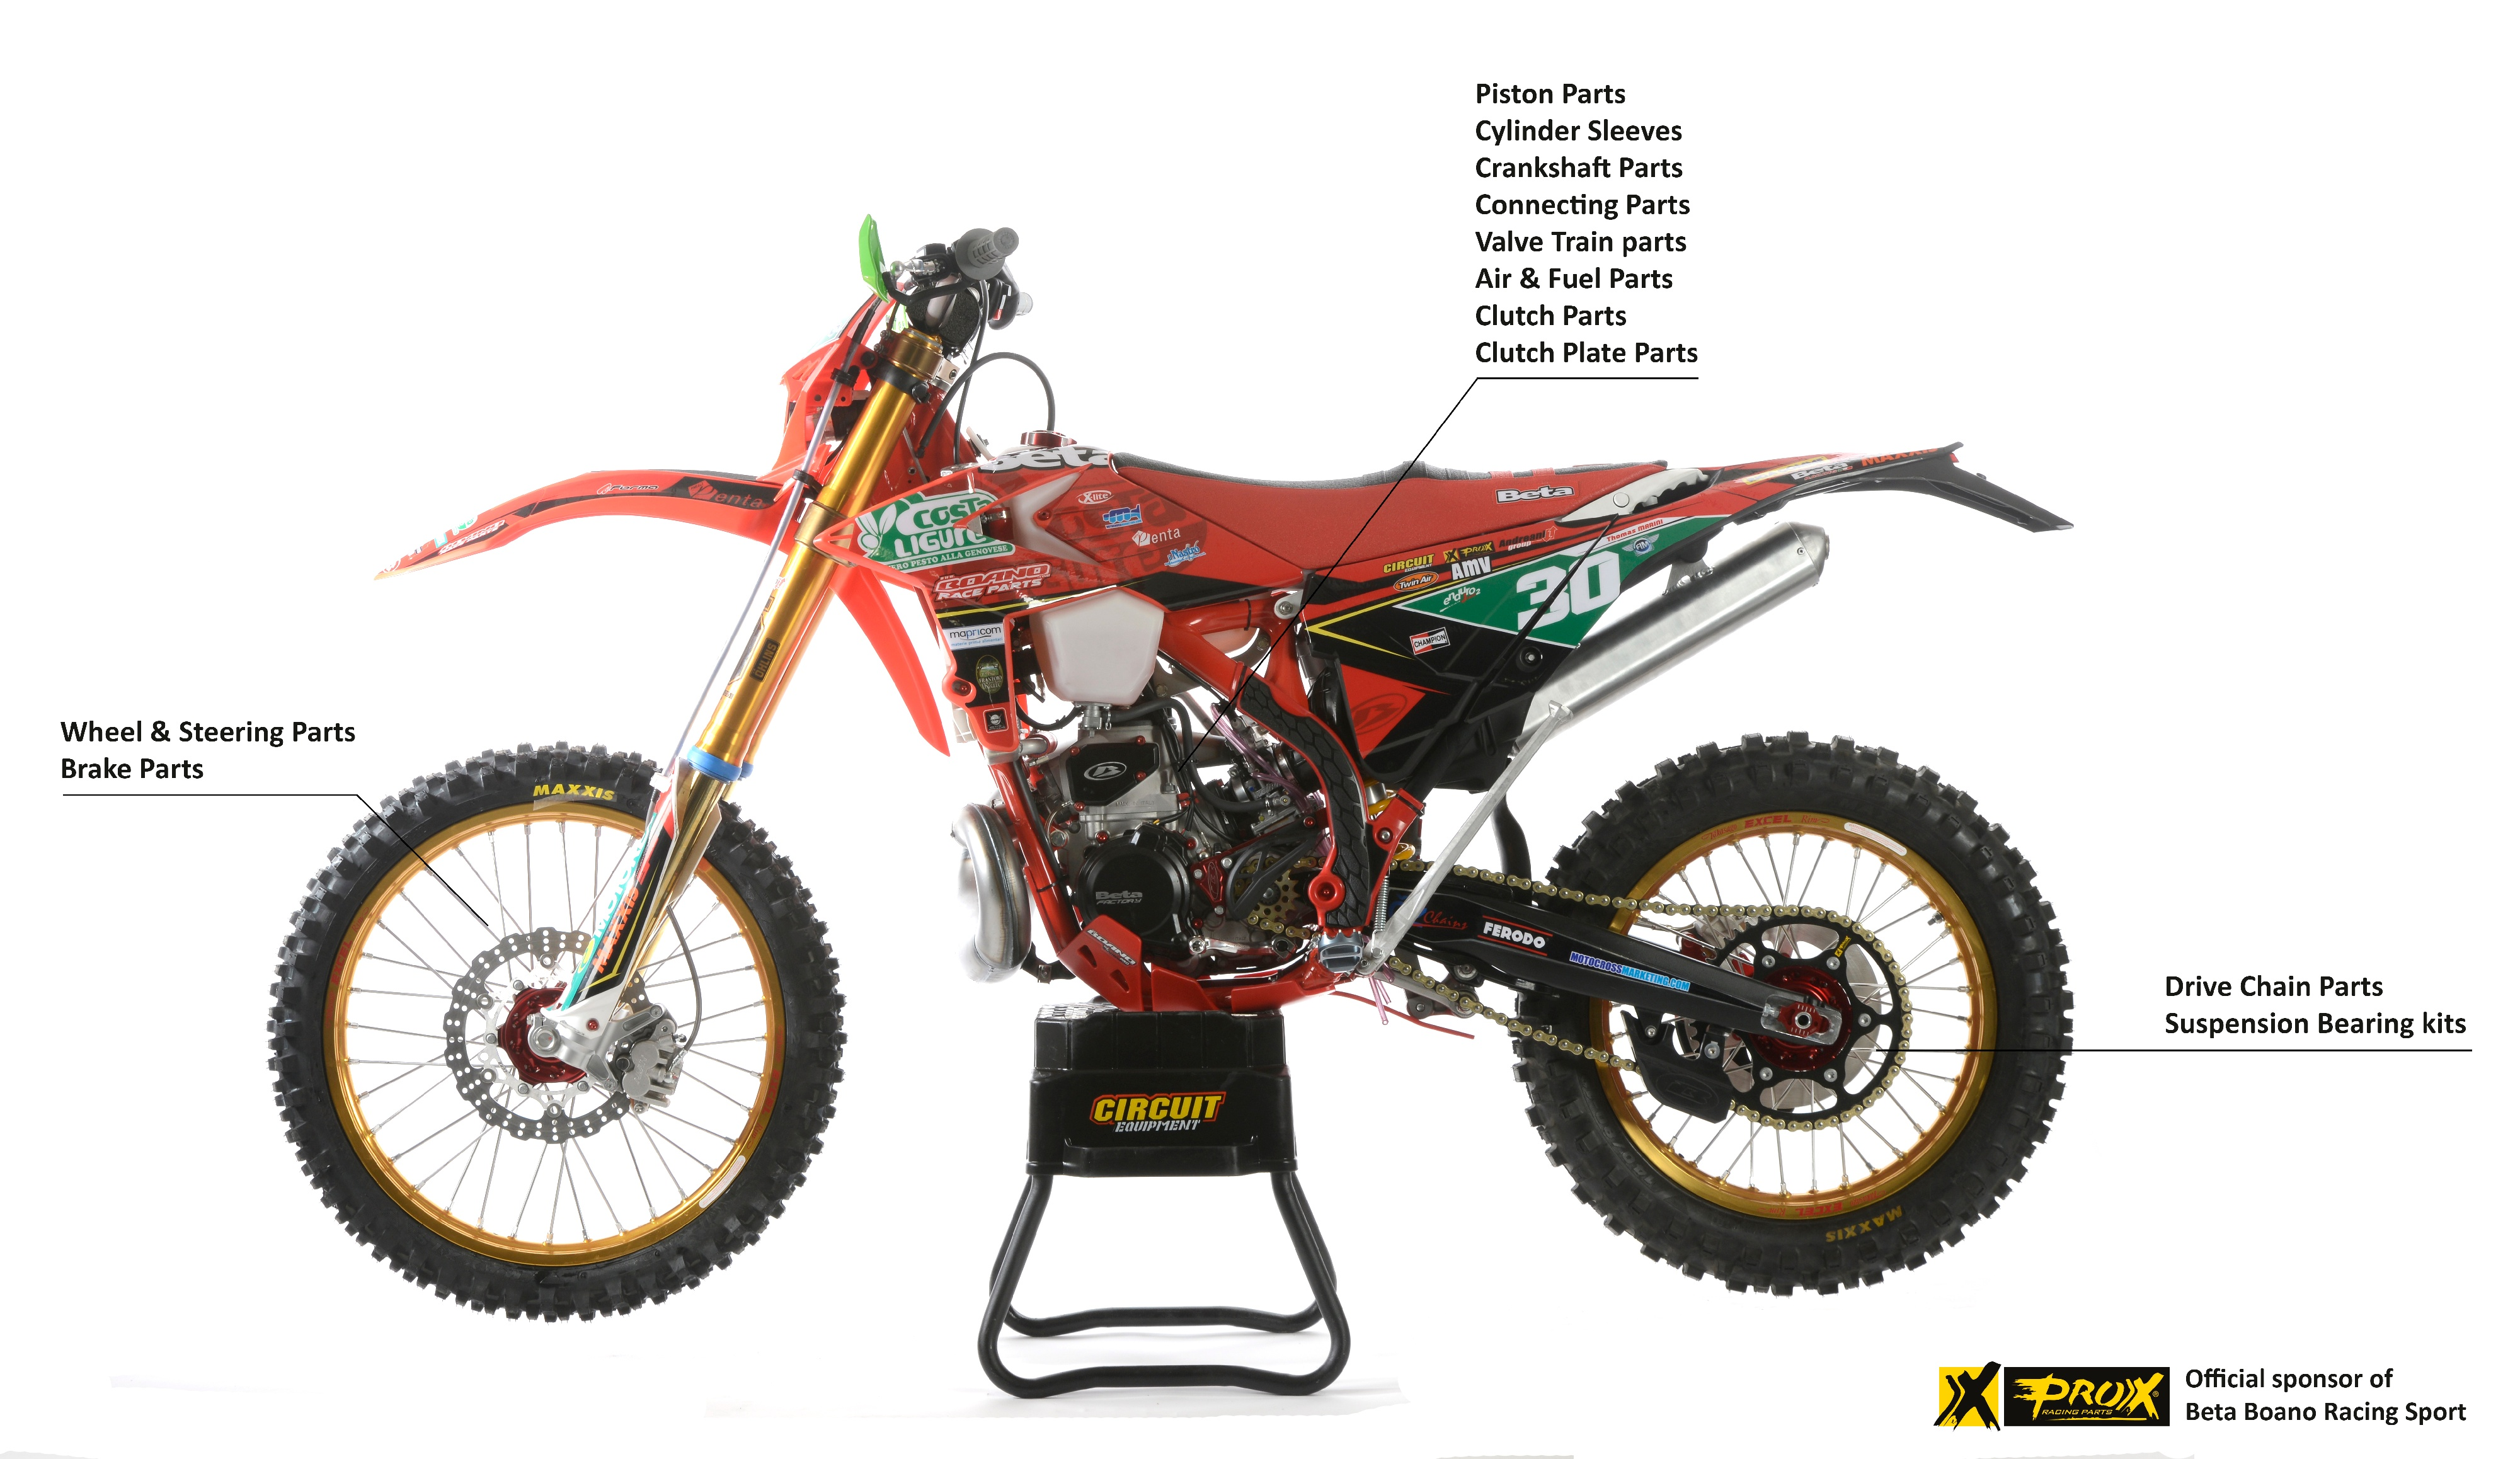 ProX Racing Parts' Complete Line of Performance Replacement Parts for Beta Motorcycles